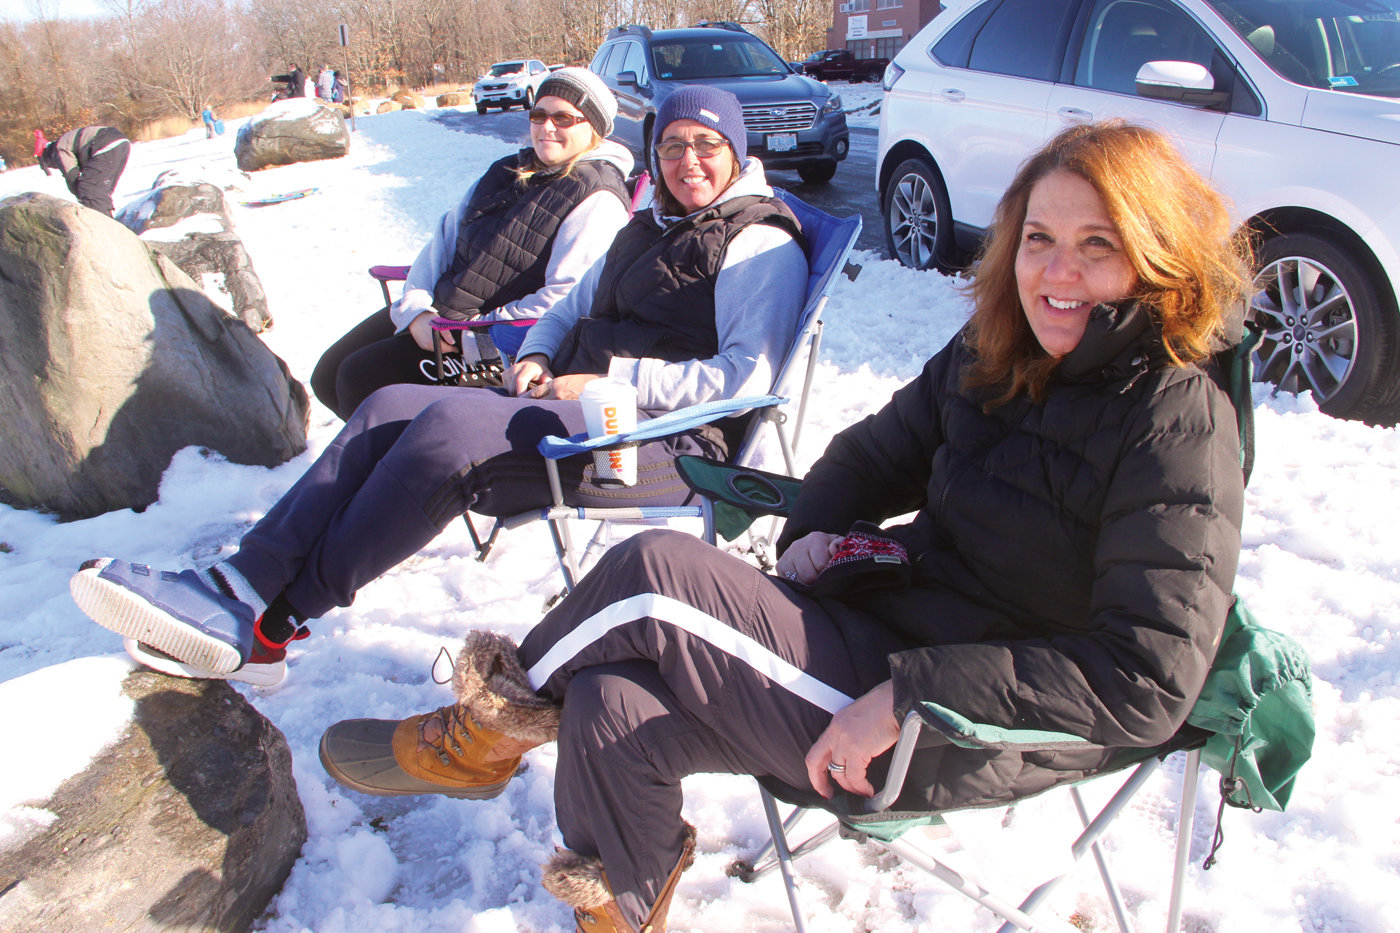 BEACHING IT? Jennifer Ross, Jennifer Izzo and Lori McNulty were prepared to stand or perch on the rocks at the crest of the hill at the school administration building (Gorton Junior High) as the kids they brought along took advantage of the first sledding of the new year. Then Ross remembered the beach chairs she'd never removed from the back of the car. They turned out to be perfect with one of the boulders the ideal footrest for Izzo.